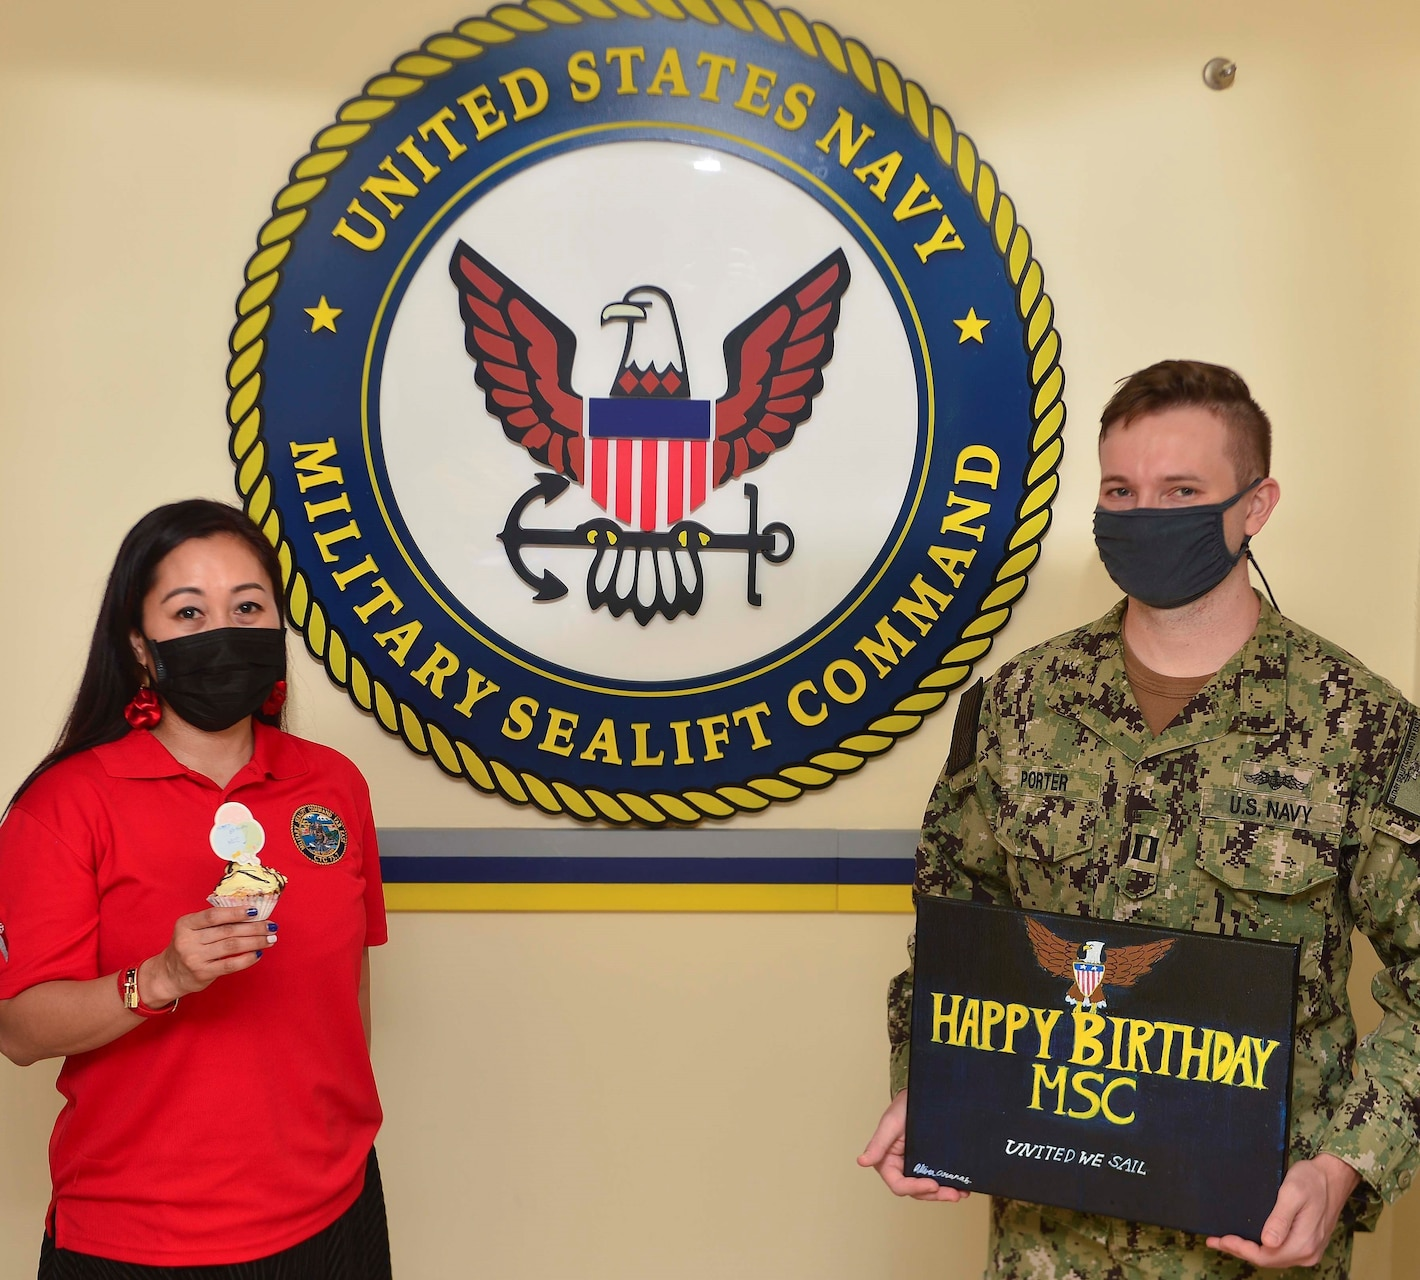 210709-N-UA460-002 SINGAPORE (July 9, 2021) From left, Military Sealift Command Far East's Theresa Aranas and Lt. Gerrit Porter, a reservist, recognize MSC's birthday on July 9.   MSC FE ensures approximately 50 ships in the Indo-Pacific region, are manned, trained and equipped to deliver essential supplies, fuel, cargo, and equipment to warfighters, both at sea and on shore. Task force commanders employ these ships to ensure mission accomplishment. COMLOG WESTPAC/CTF 73 is the U.S. 7th Fleet's provider of combat-ready logistics, operating government-owned and contracted ships that keep units throughout 7th Fleet armed, fueled and fed. As the U.S. Navy's largest forward-deployed fleet, 7th Fleet employs 50-70 ships and submarines across the Western Pacific and Indian oceans. U.S. 7th Fleet routinely operates and interacts with 35 maritime nations while conducting missions to preserve and protect a free and open Indo-Pacific Region. Military Sealift Command is the leading provider of ocean transportation for the Navy and the rest of the Department of Defense - operating approximately 125 ships daily around the globe. (U.S. Navy photo by Mass Communication Specialist 1st Class Gregory Johnson)